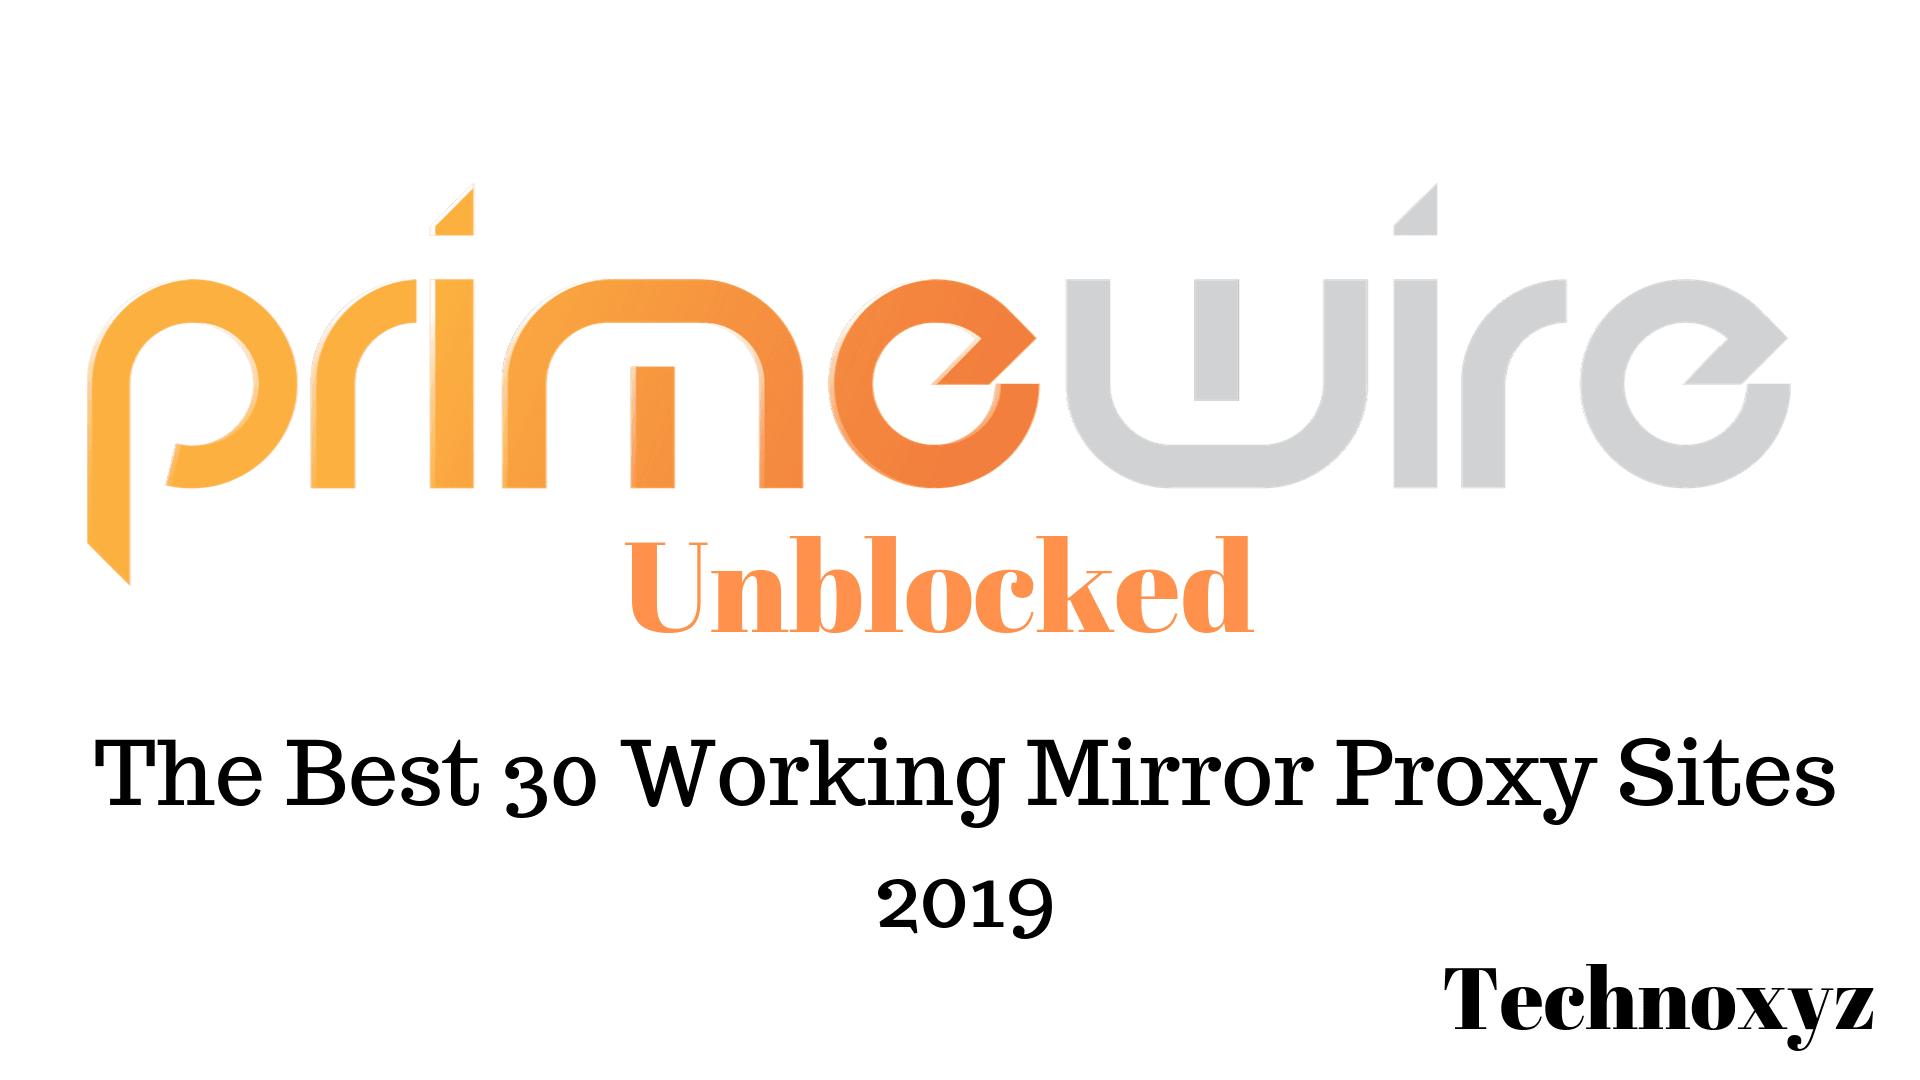 primewire unblocked